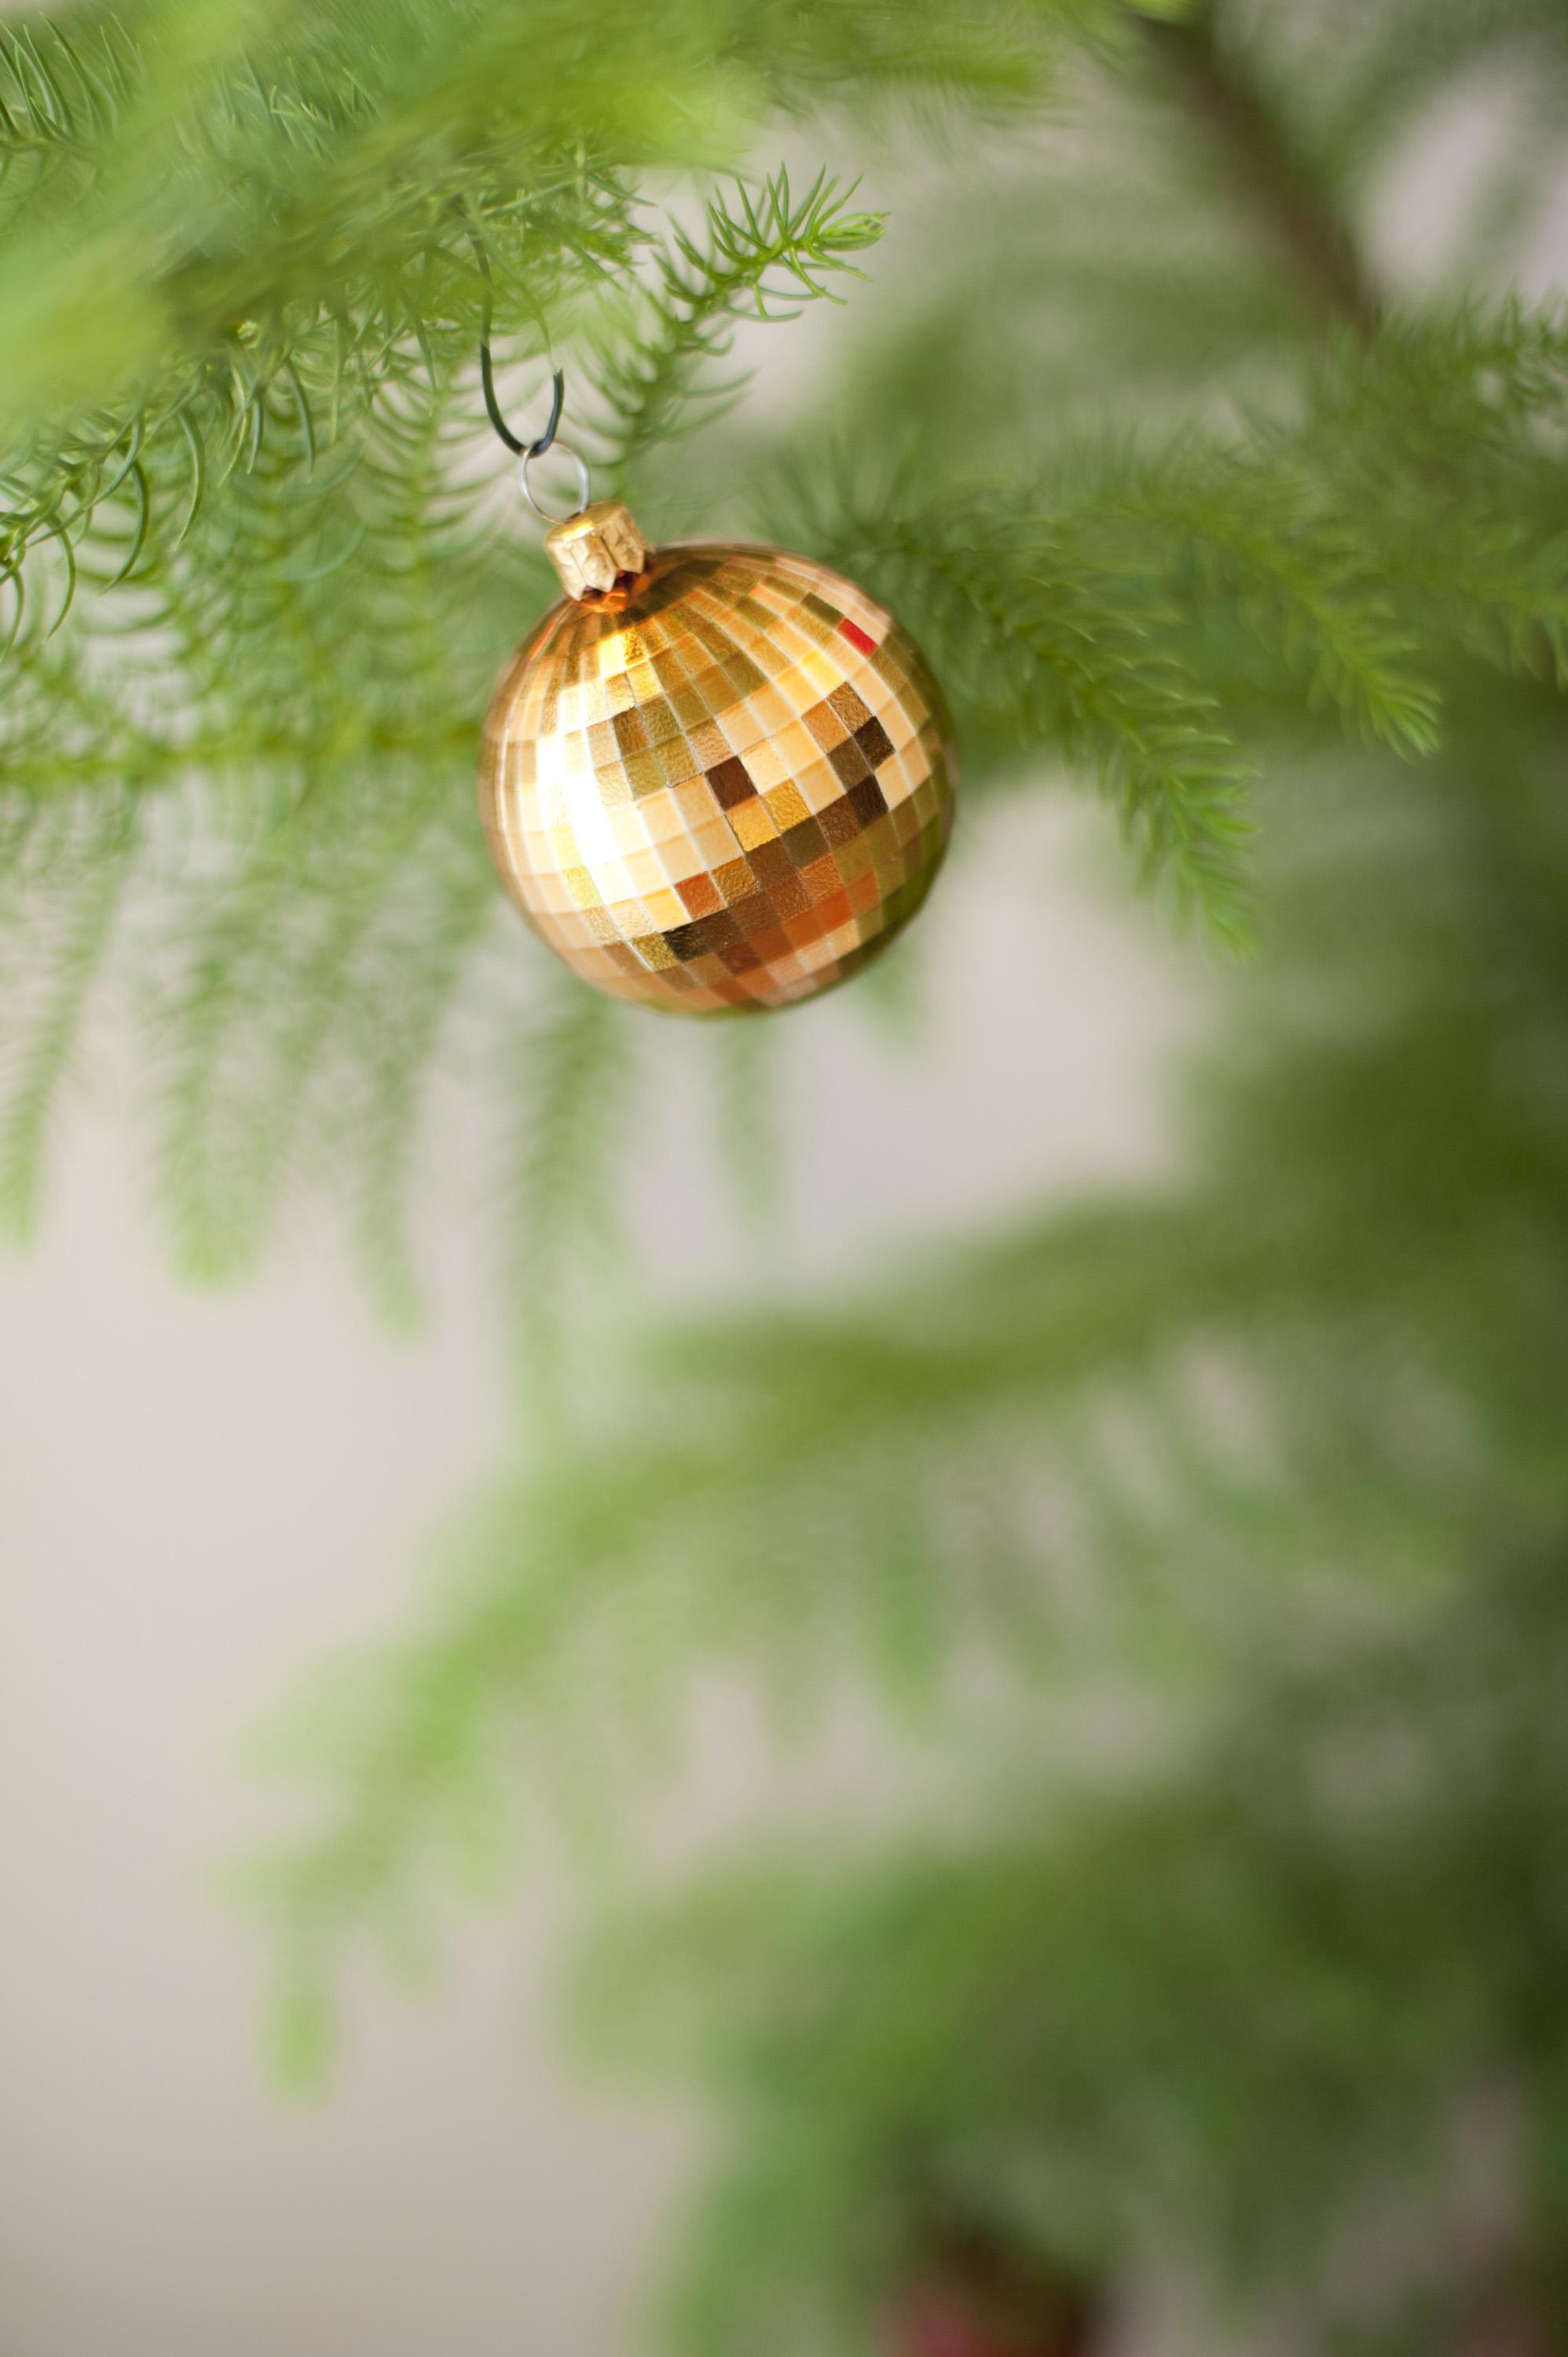 Single metallic golden Christmas bauble hanging on a green tree with copy space below for your holiday greeting